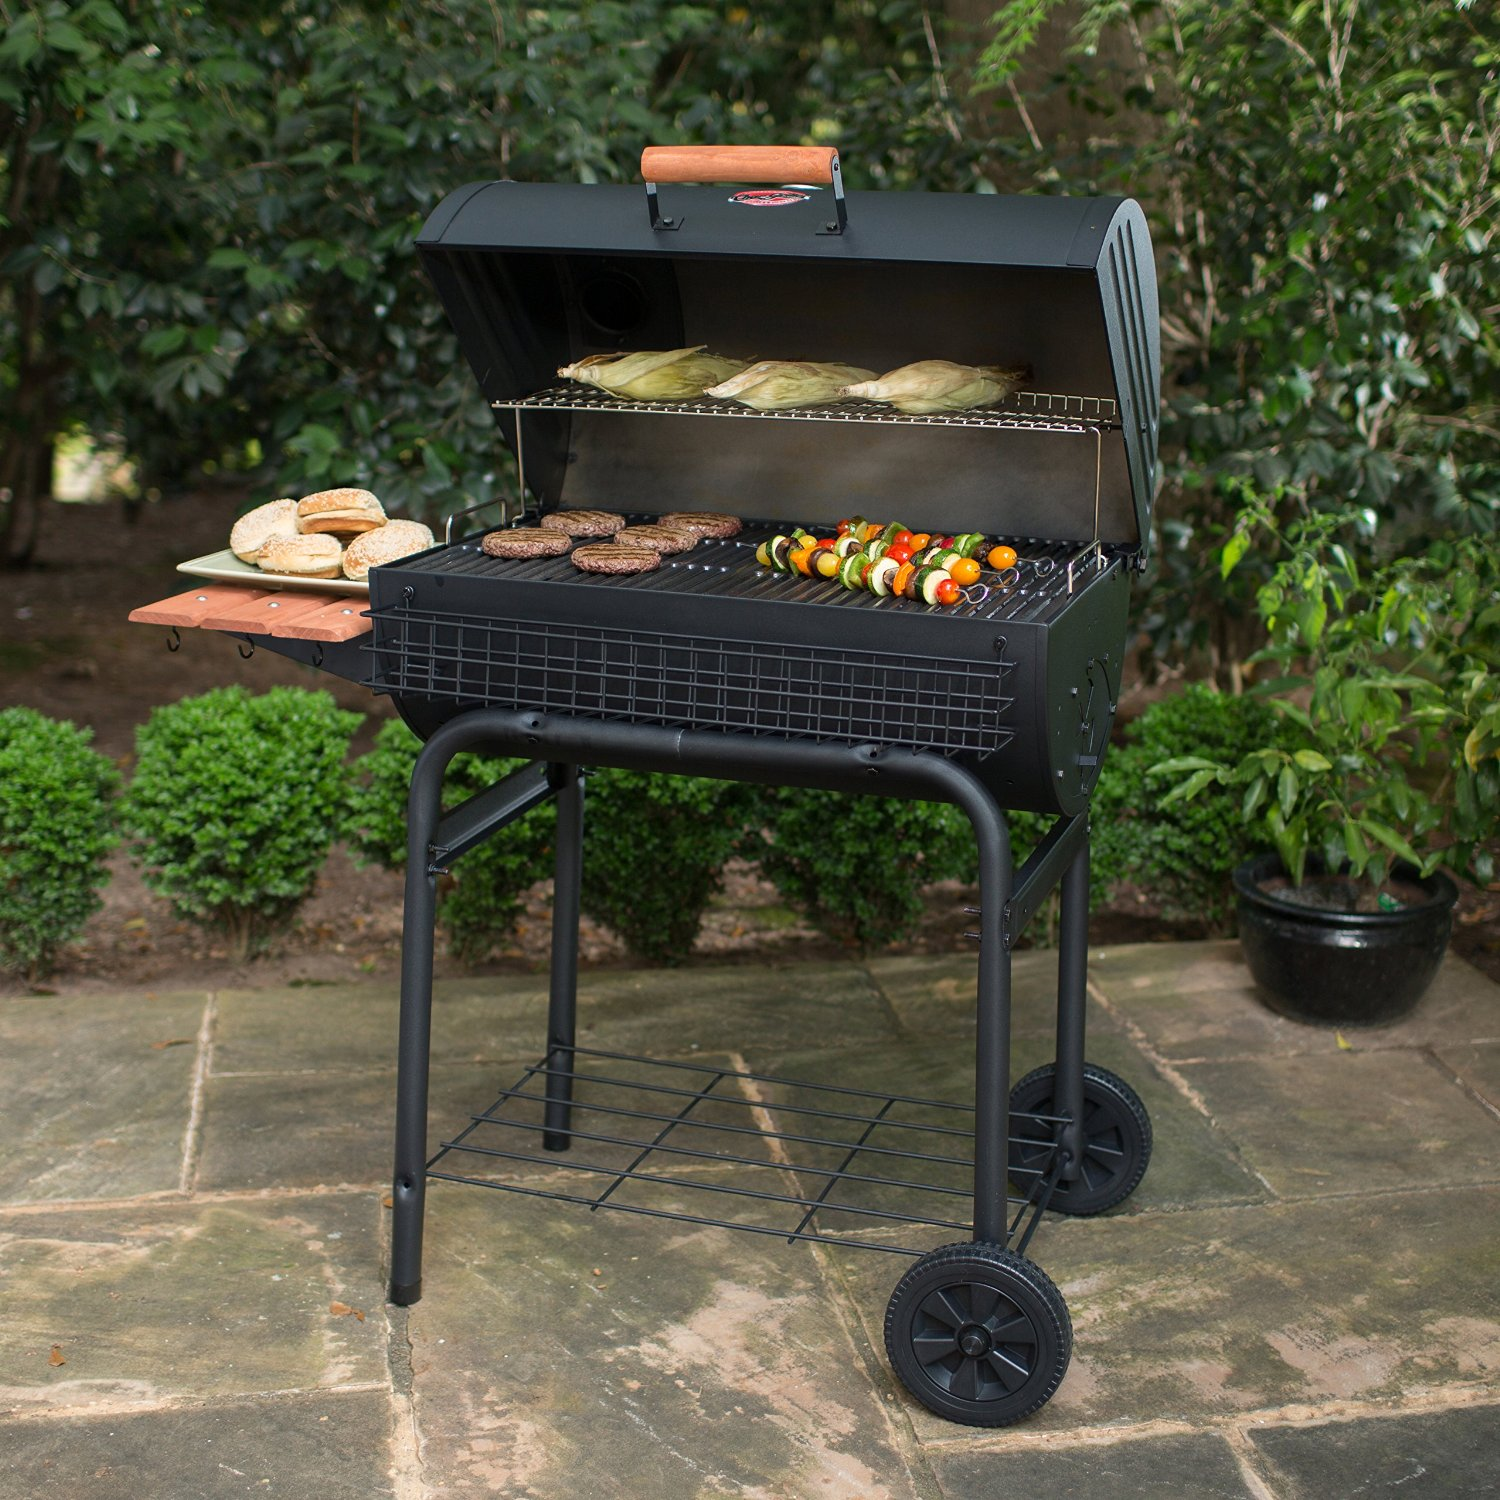 Char-Griller Deluxe Griller Portable Charcoal Grill